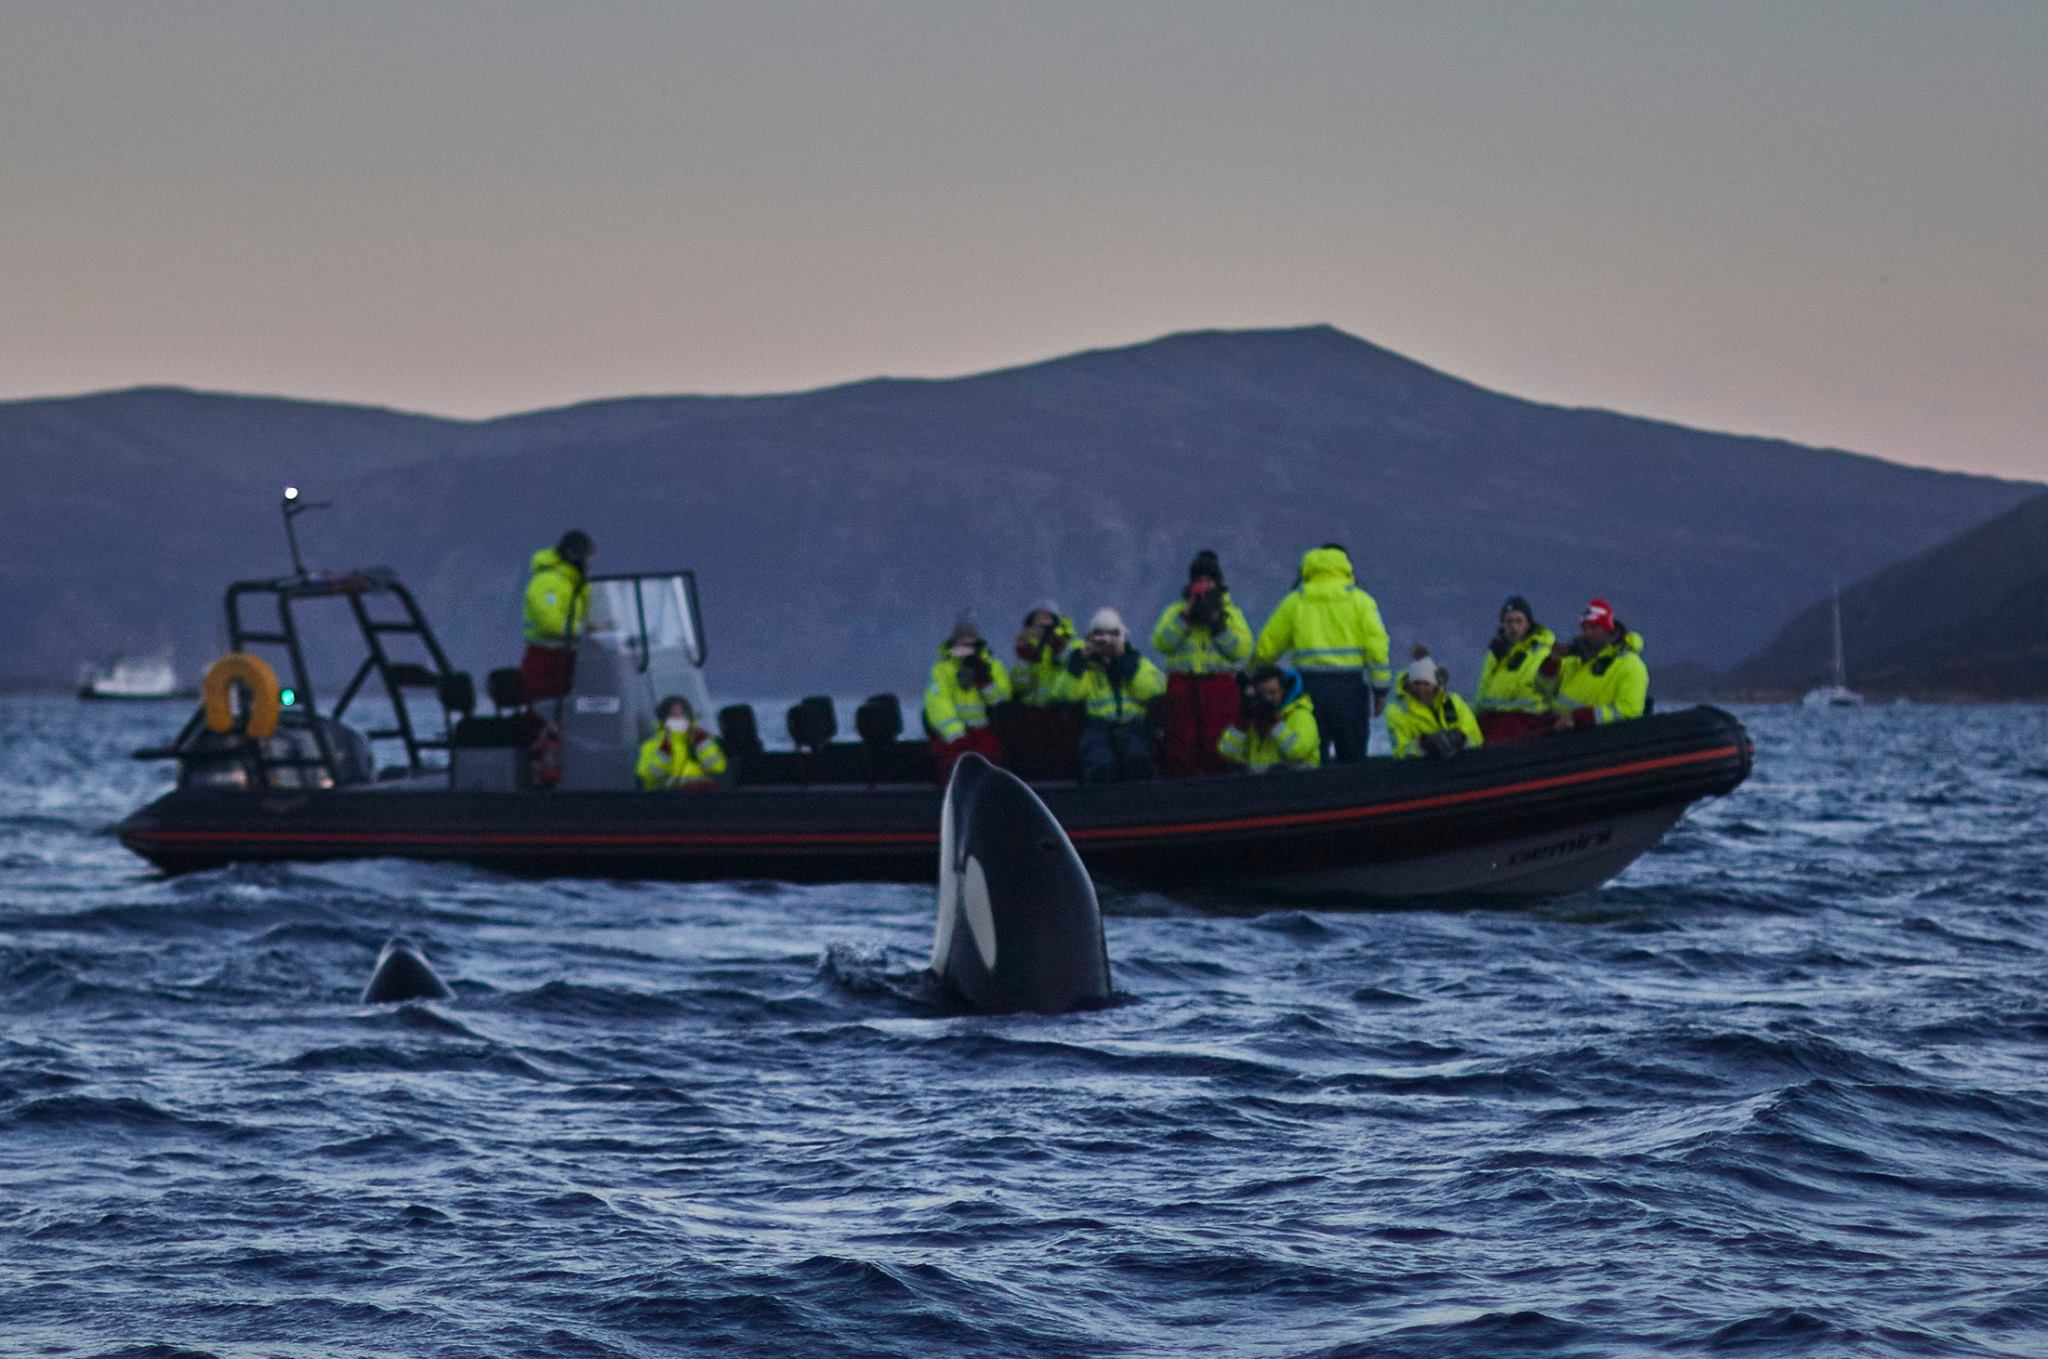 Whale watching in magical Skjervøy - Green Gold of Norway